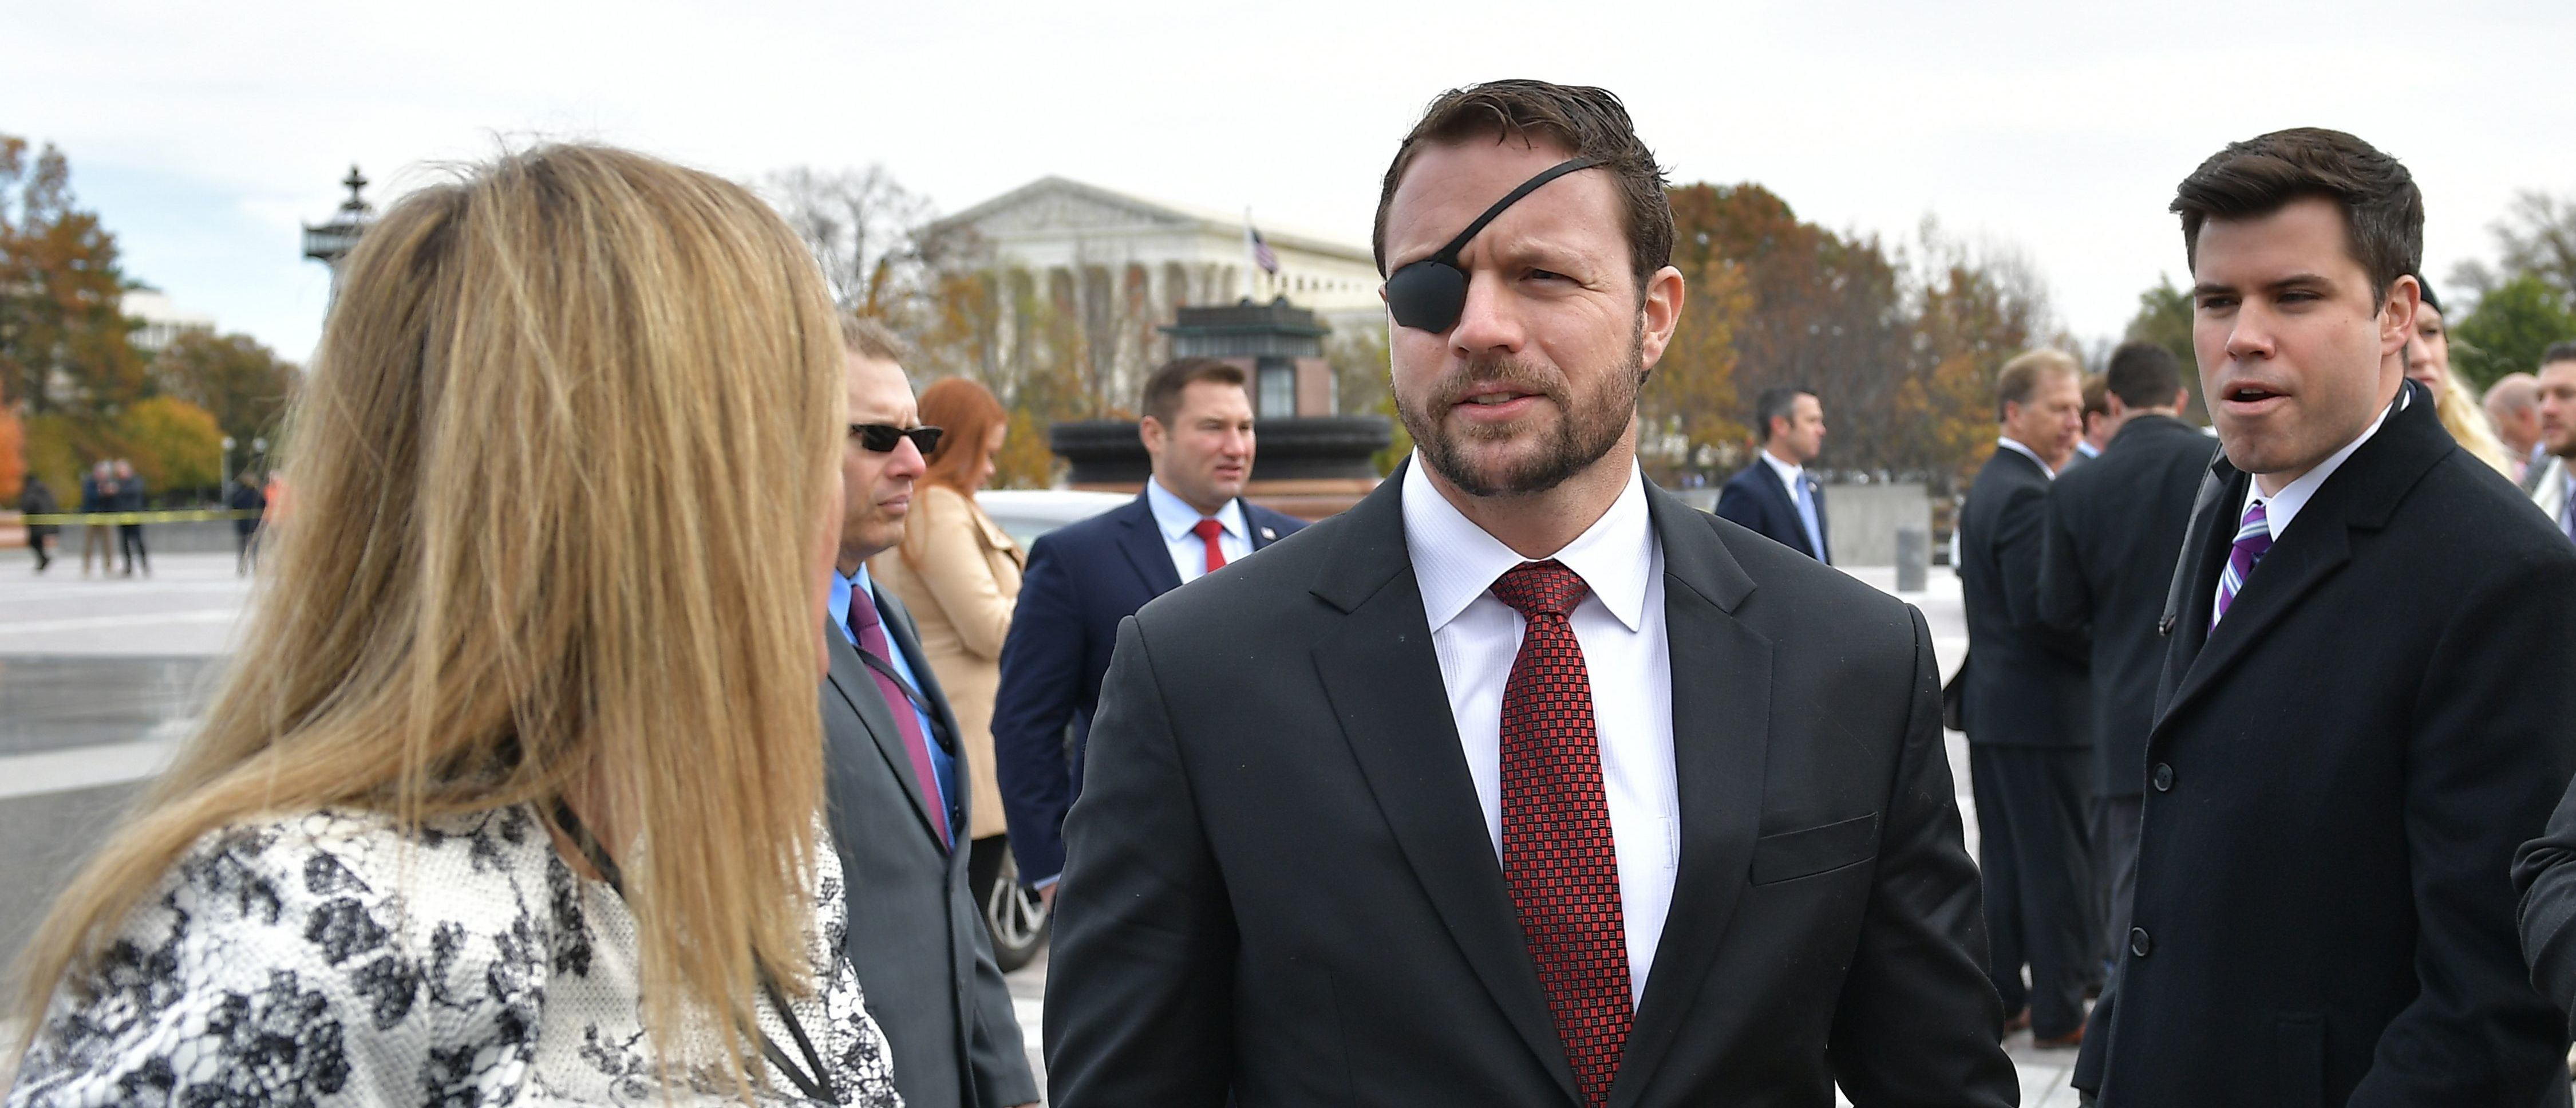 Republican House member-elect Dan Crenshaw is seen after posing for the 116th Congress members-elect group photo on the East Front Plaza of the US Capitol in Washington, DC on November 14, 2018. (Photo credit: MANDEL NGAN/AFP/Getty Images)